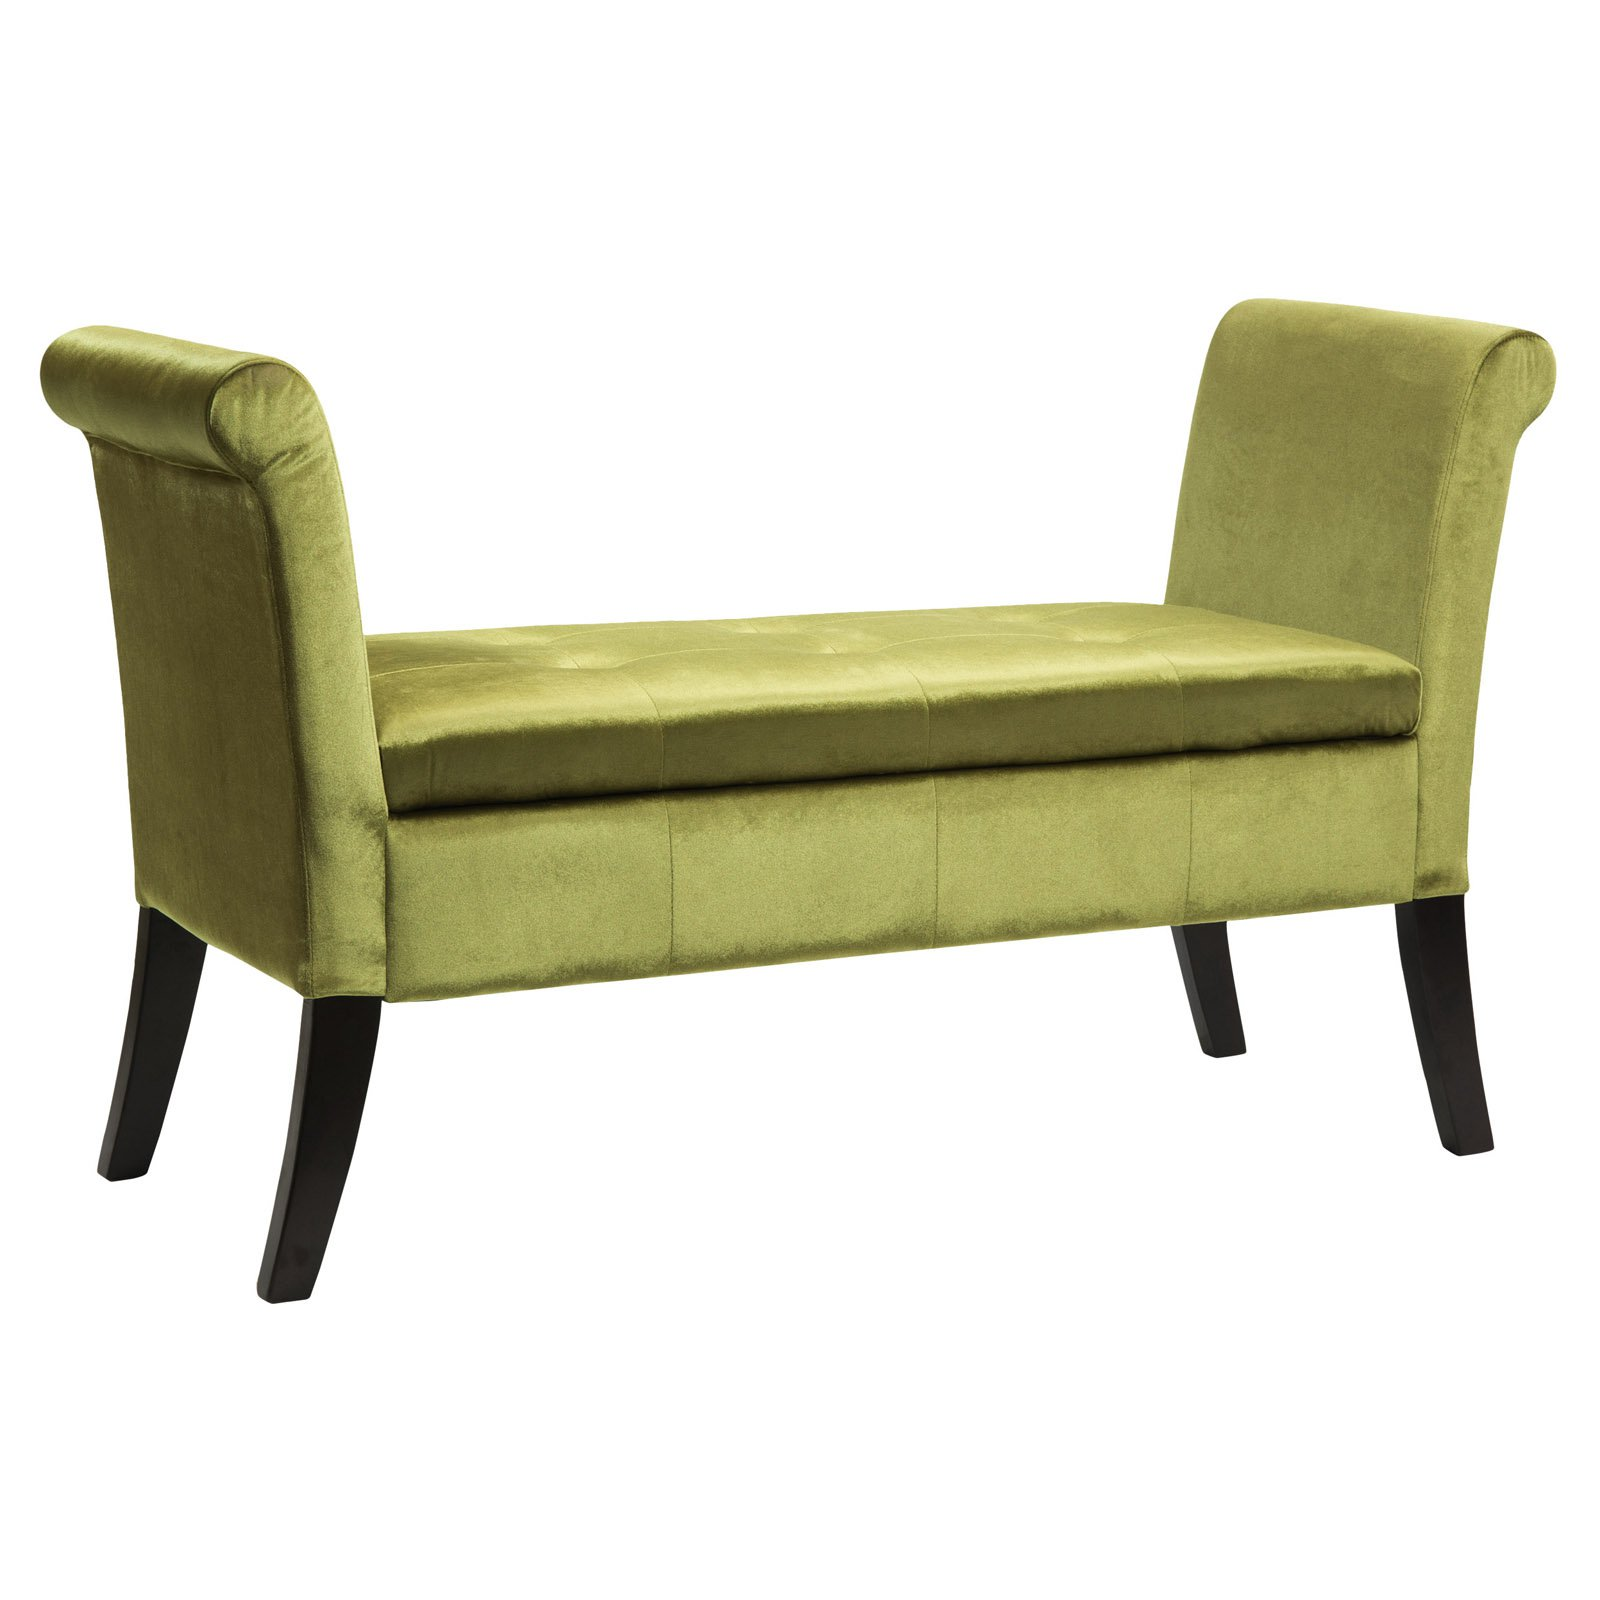 Antonio Storage Bench with Scrolled Arms in Velvet